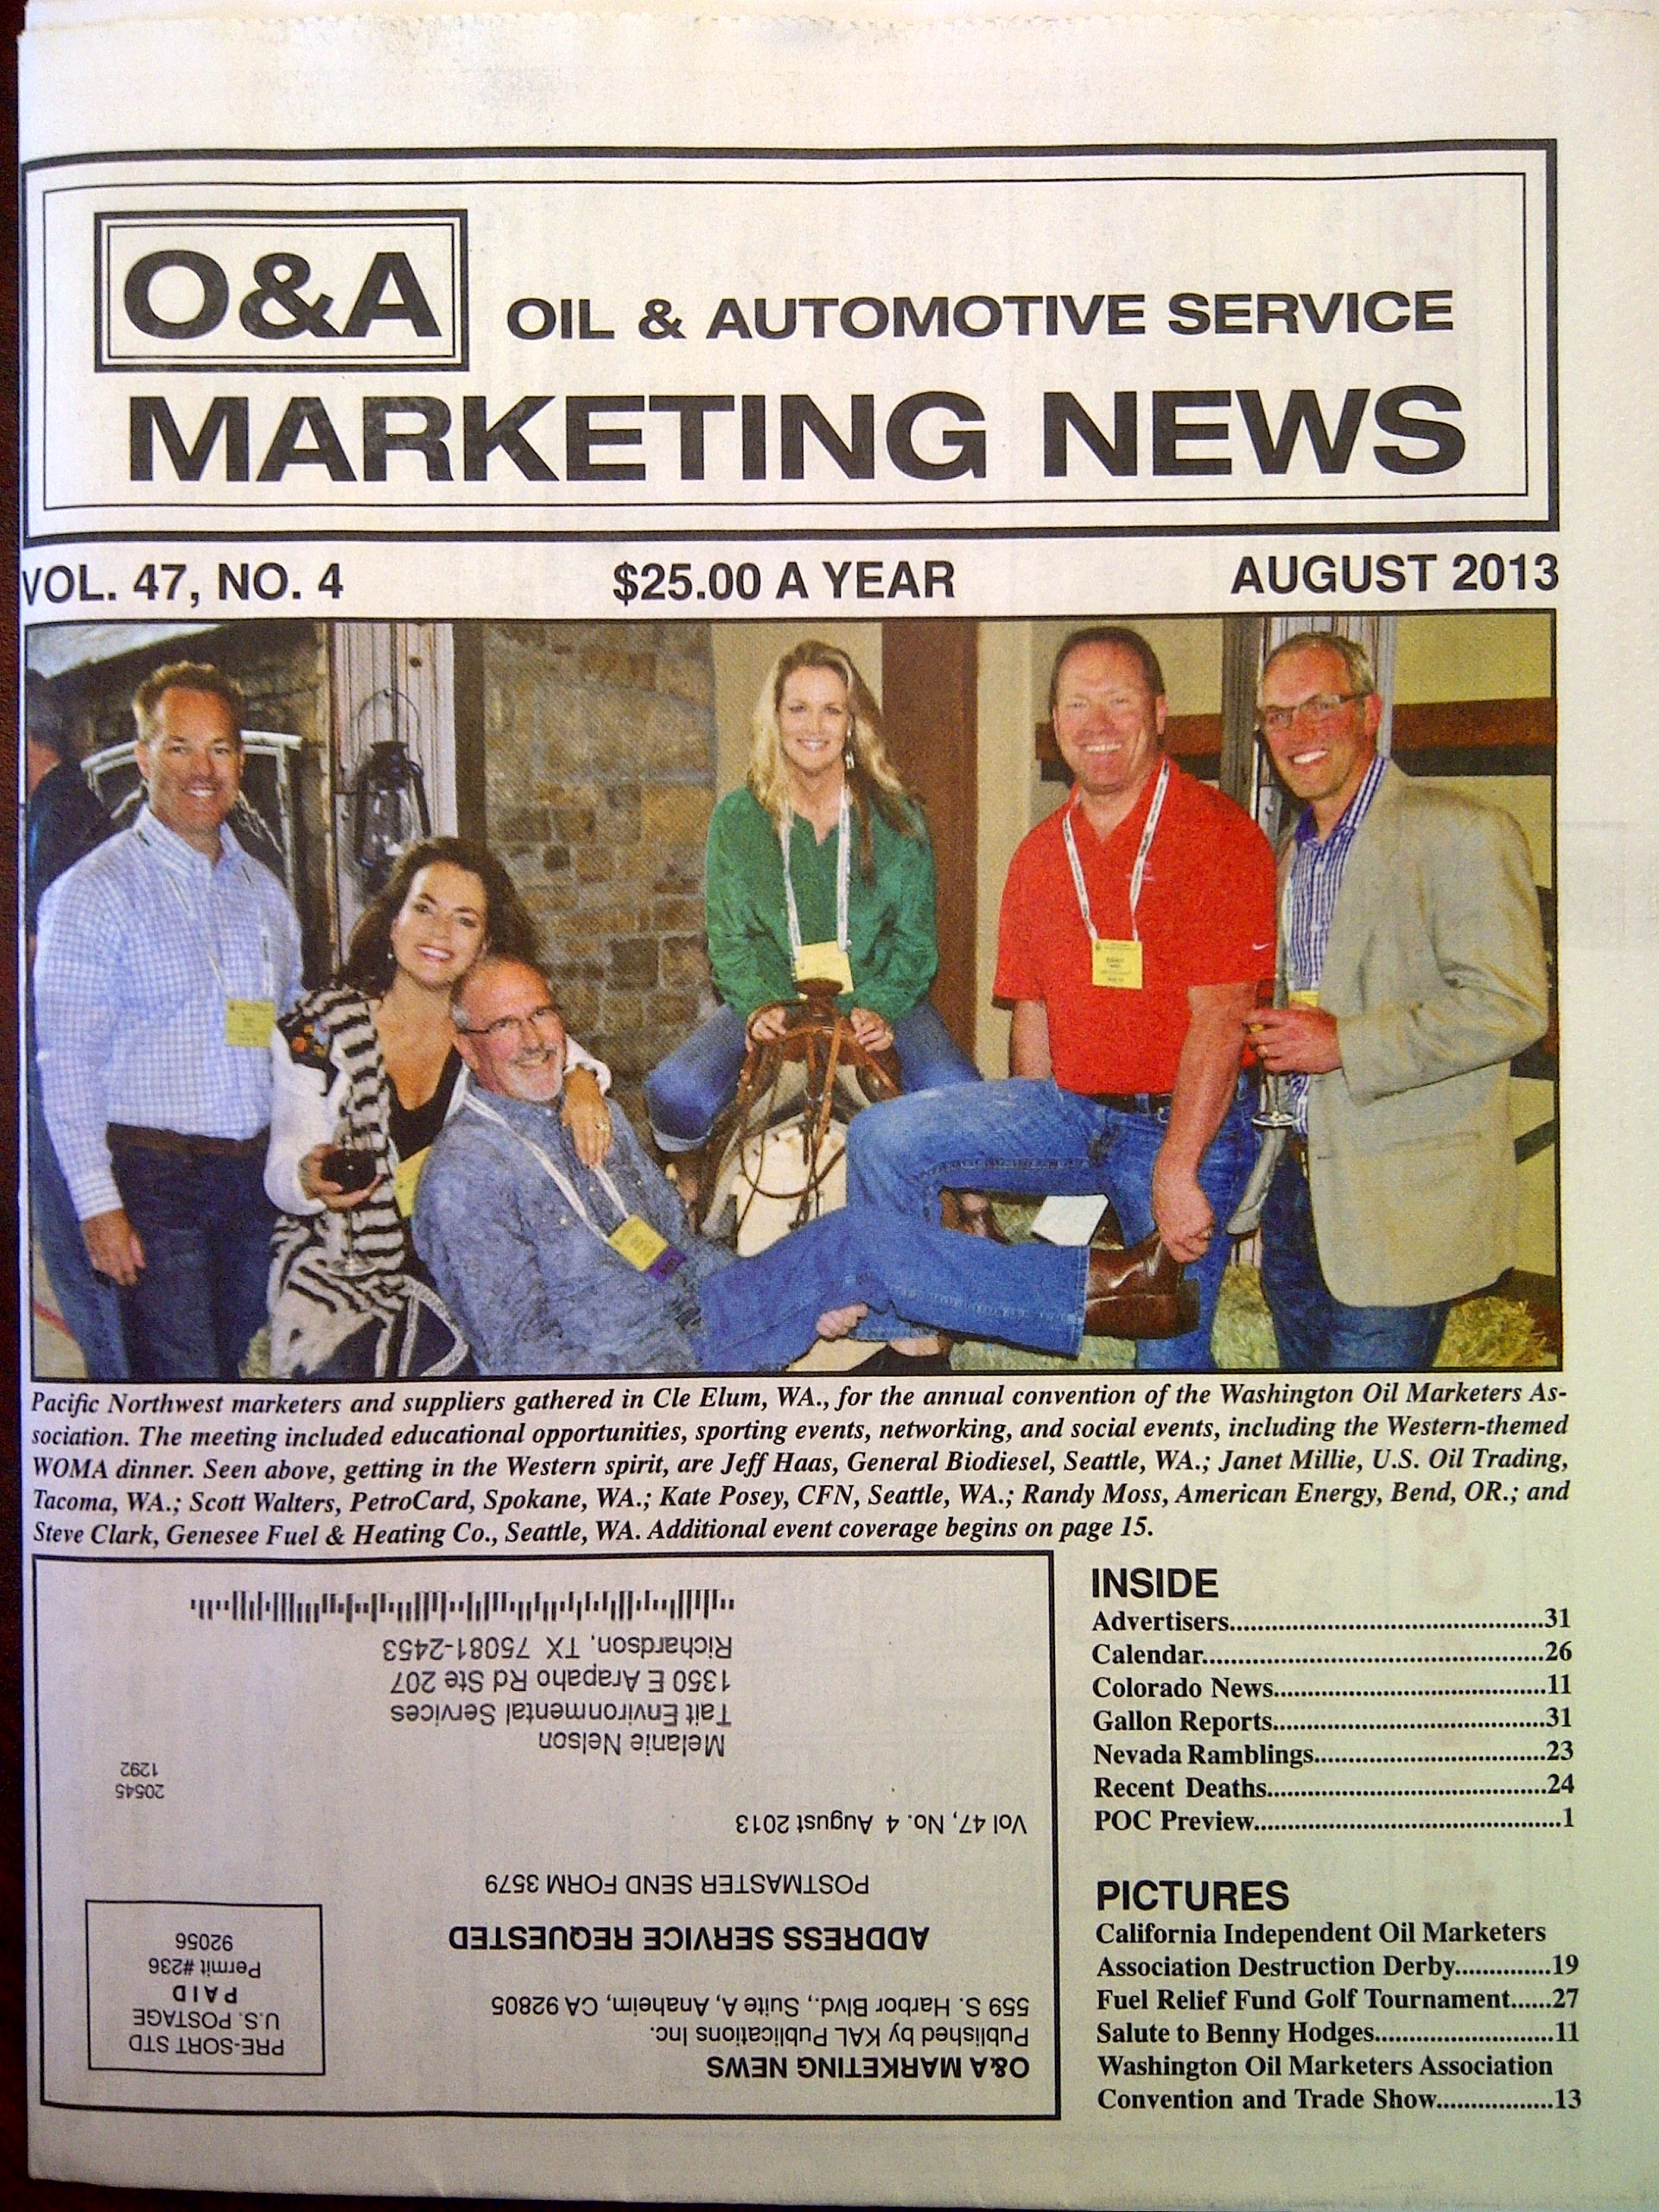 """Tim Ericsen, COO of Tait Environmental Services, featured in the """"O&A"""" Oil &Automotive Marketing News - for presenting """"Contracted Designated Operator - Managing a Successful Program"""" at the 2013 Pacific Oil Conference in Los Angeles California September 3-5."""